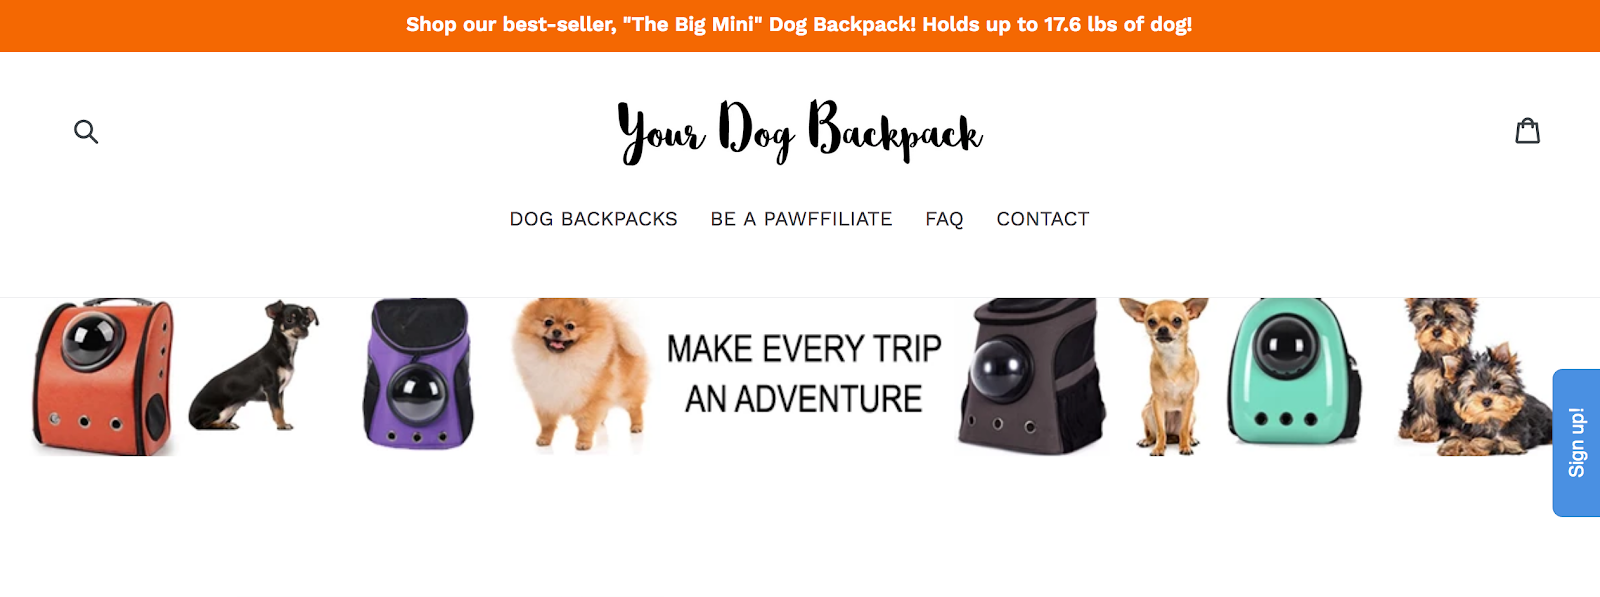 Your Dog Backpack - Brands looking for pet influencers